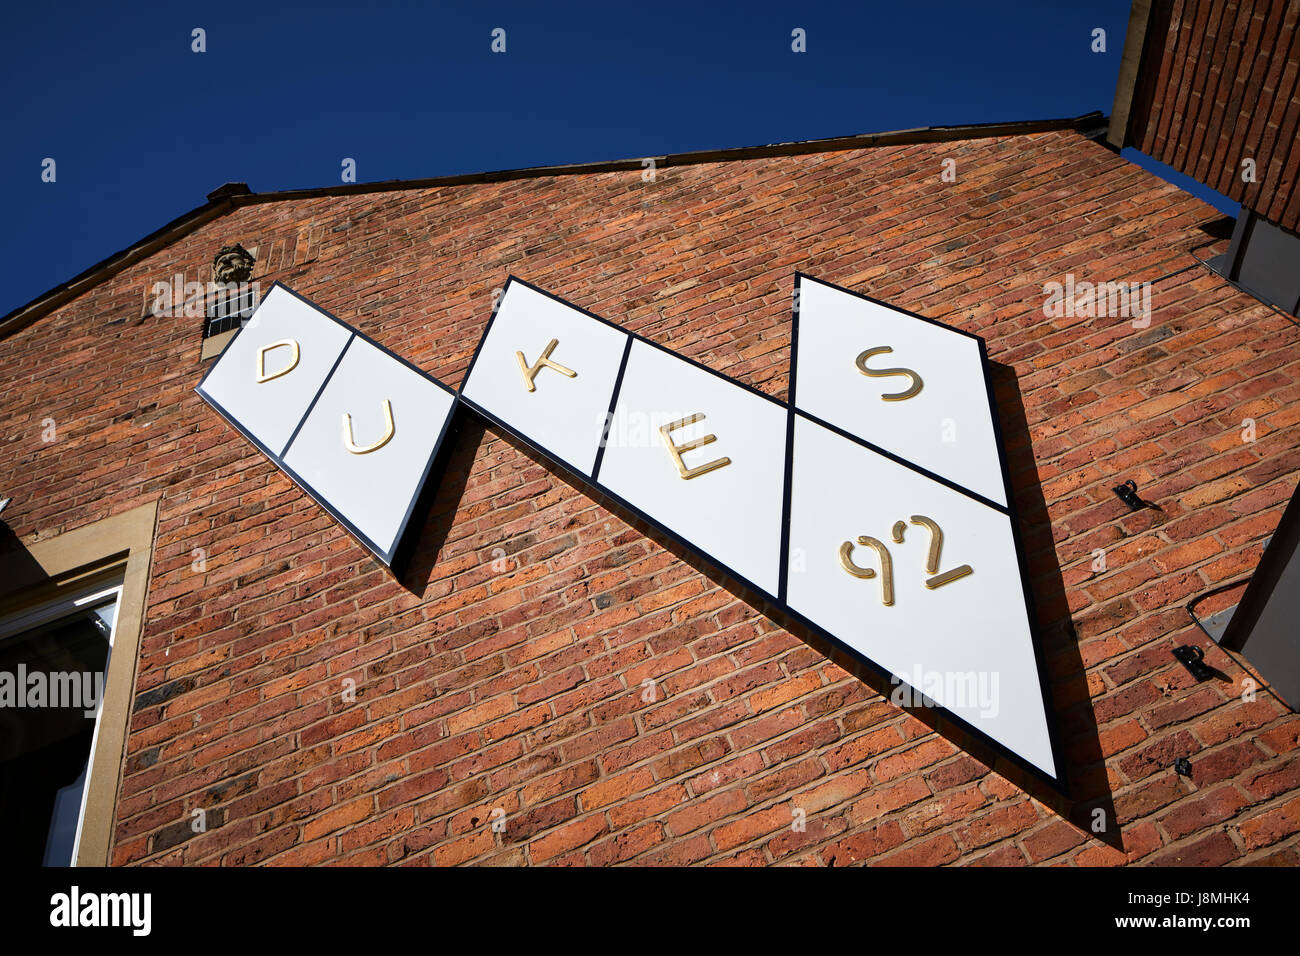 Dukes 92 landmark pub in   Castlefield named after lock on  Rochdale Canal, Gtr Manchester, UK. - Stock Image